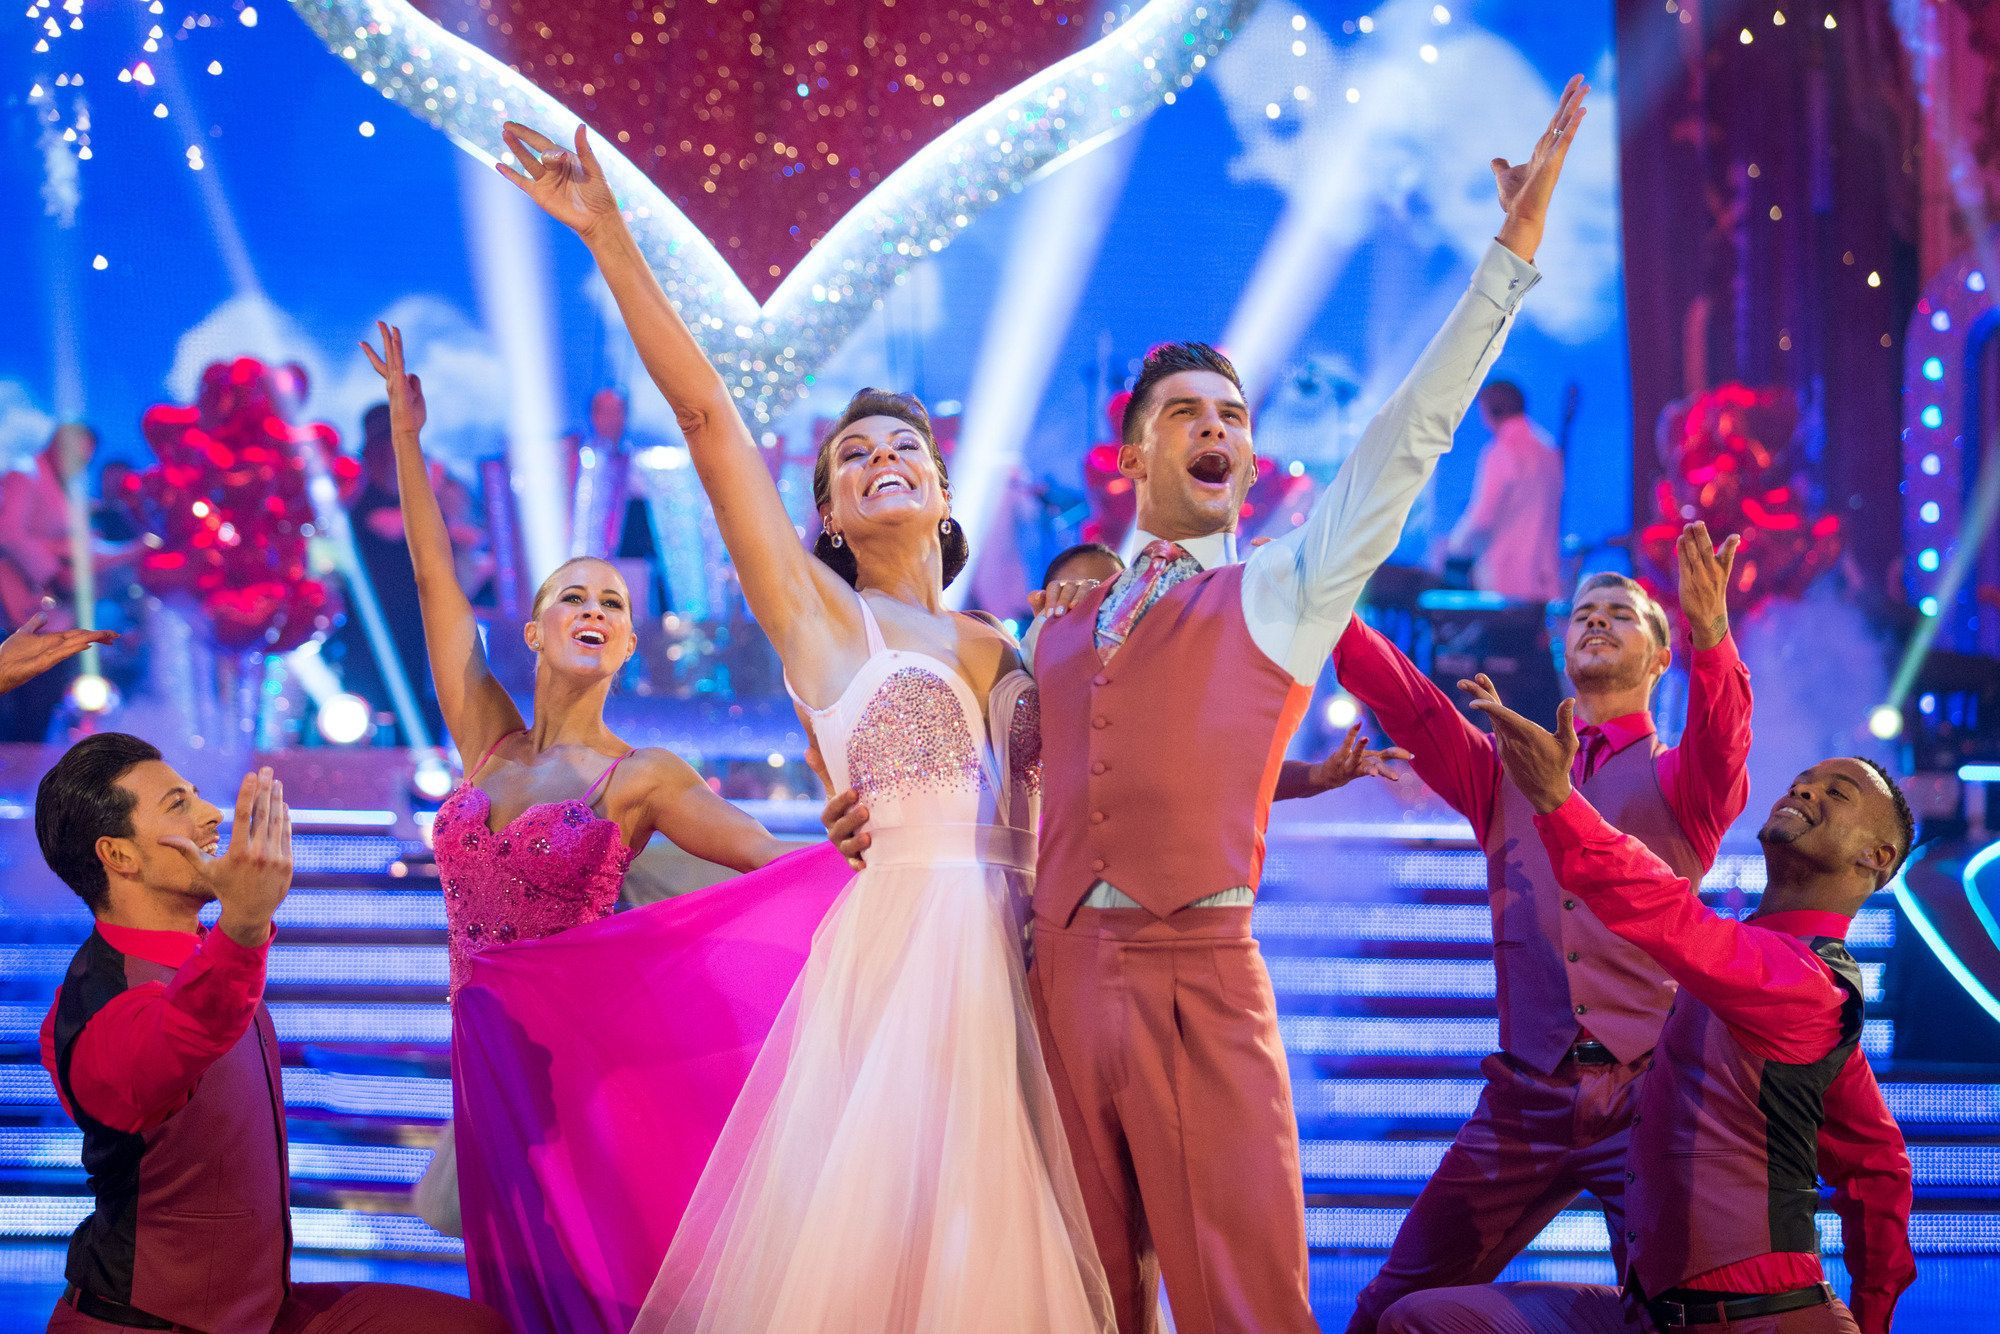 Kate Silverton Is The Eighth Celebrity To Leave 'Strictly' After Spectacular Blackpool